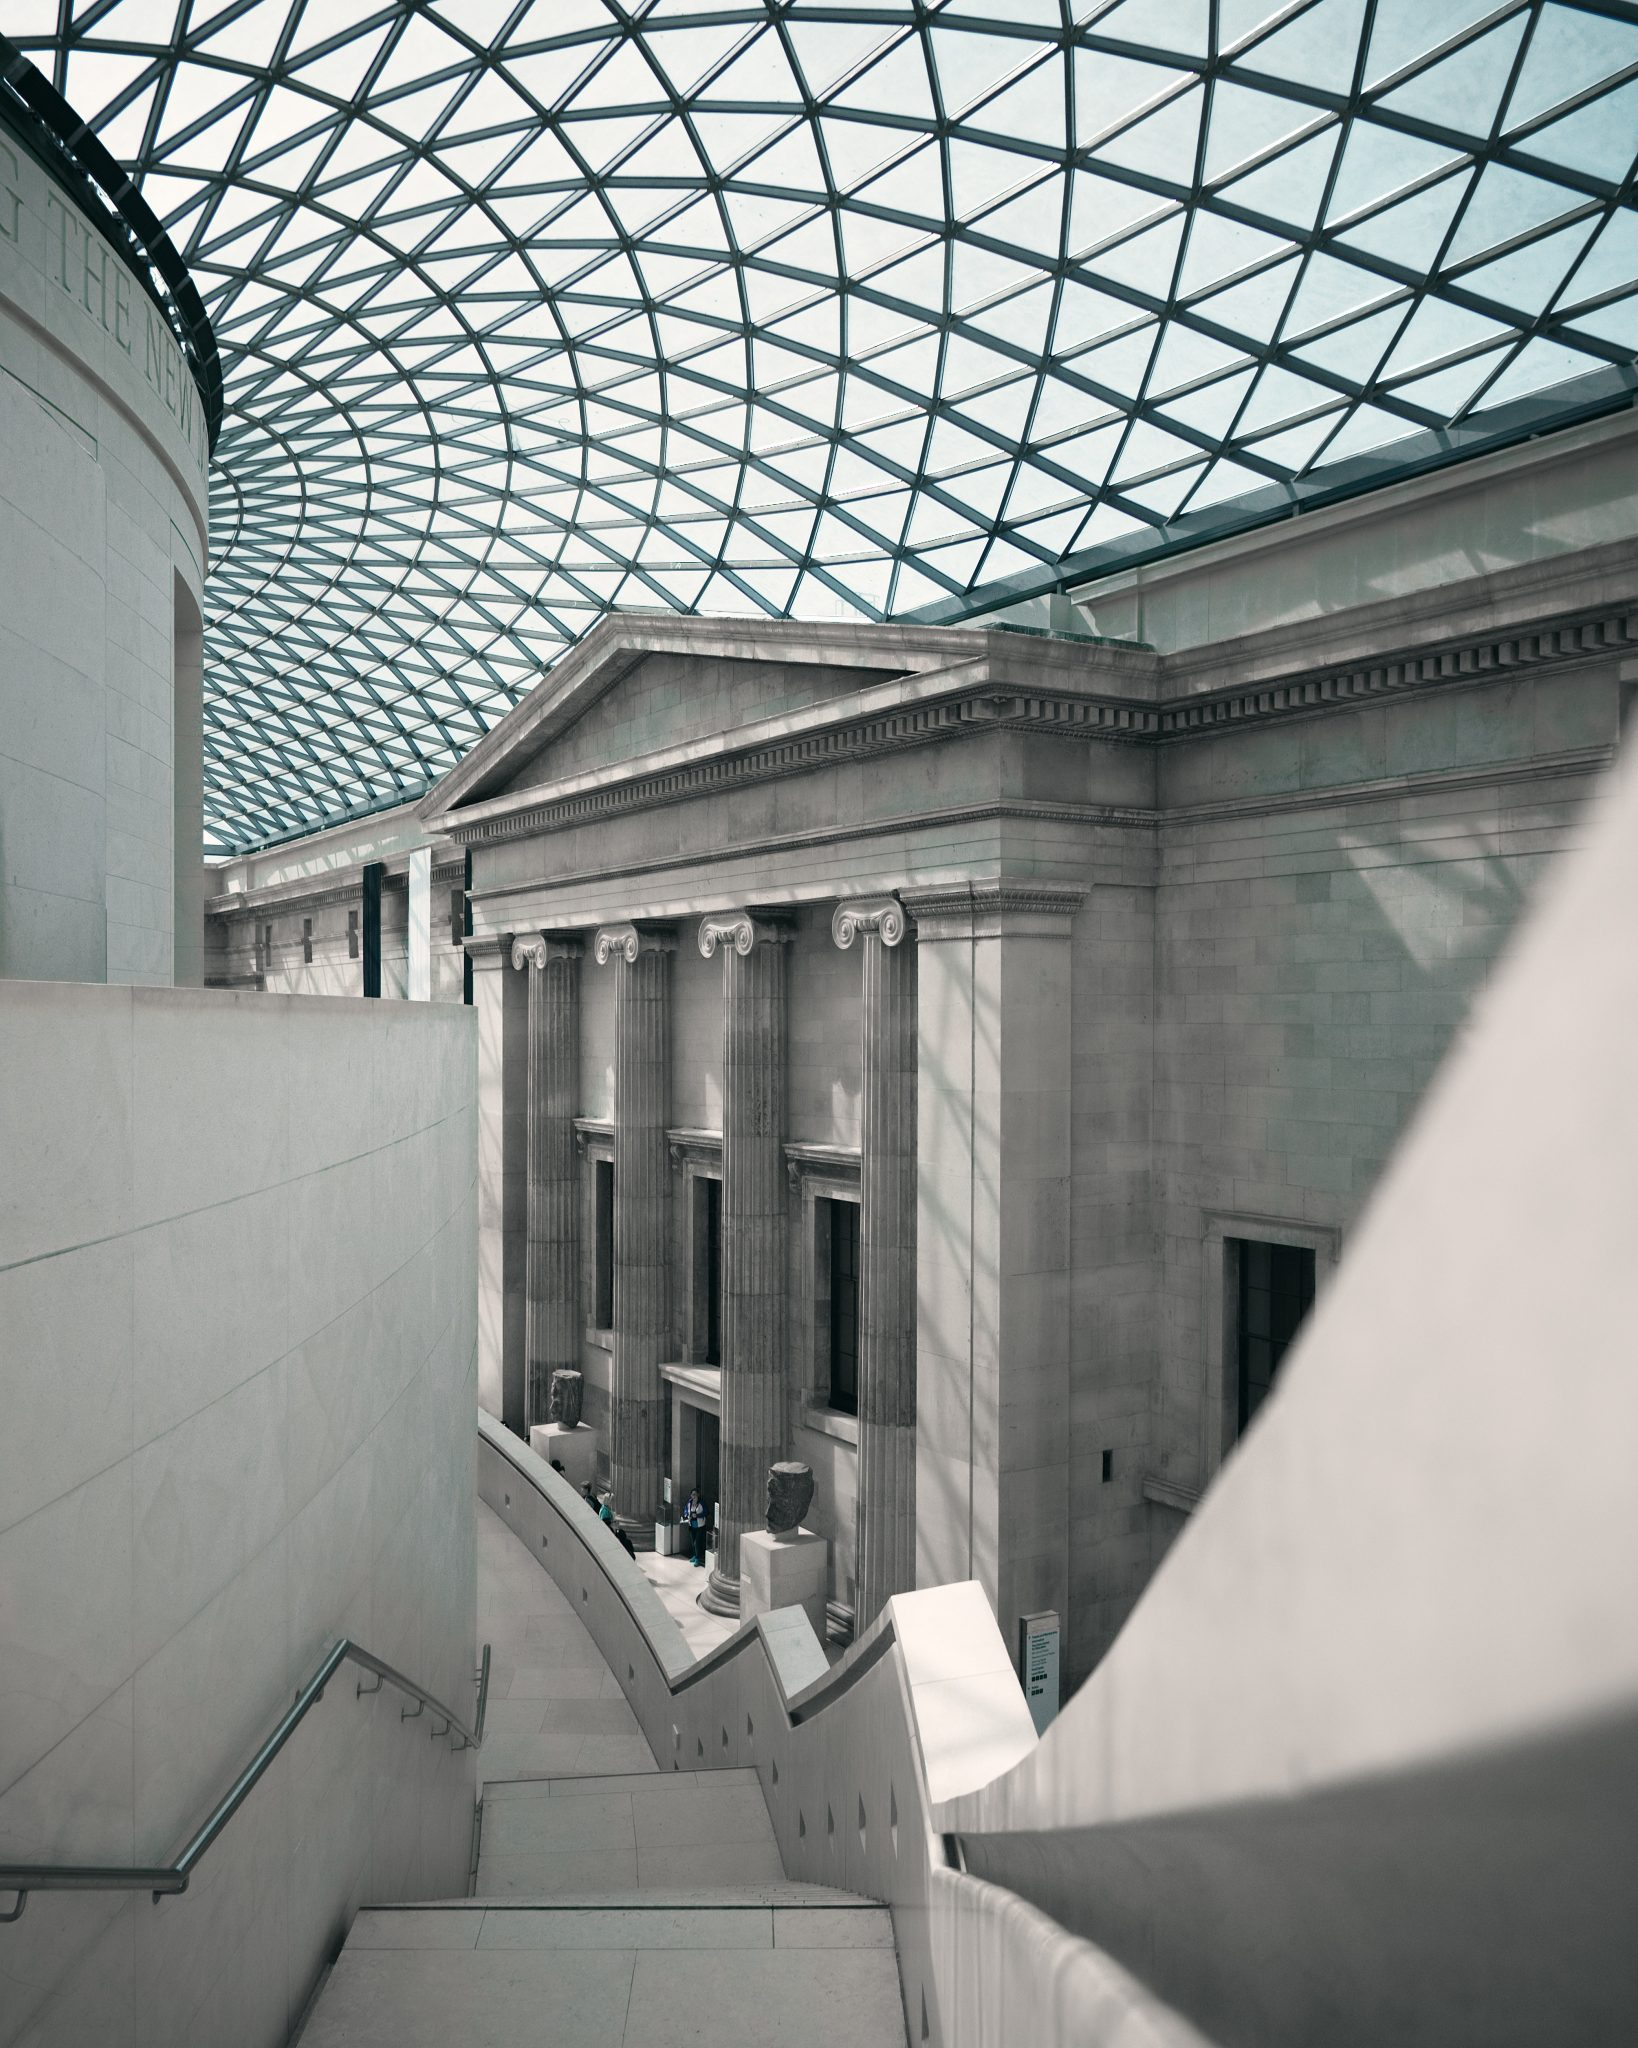 British Museum, London  London is a cultural hub just waiting to be explored, and what better way to dive into history than by using the resources on offer at the British Museum. Older than the United States itself, this museum contains one of the most important collections in the world, illustrating the evolution of Man from his beginnings to present day. Scroll through the ages as you explore art, history, religion, conflict and more. britishmuseum.withgoogle.com